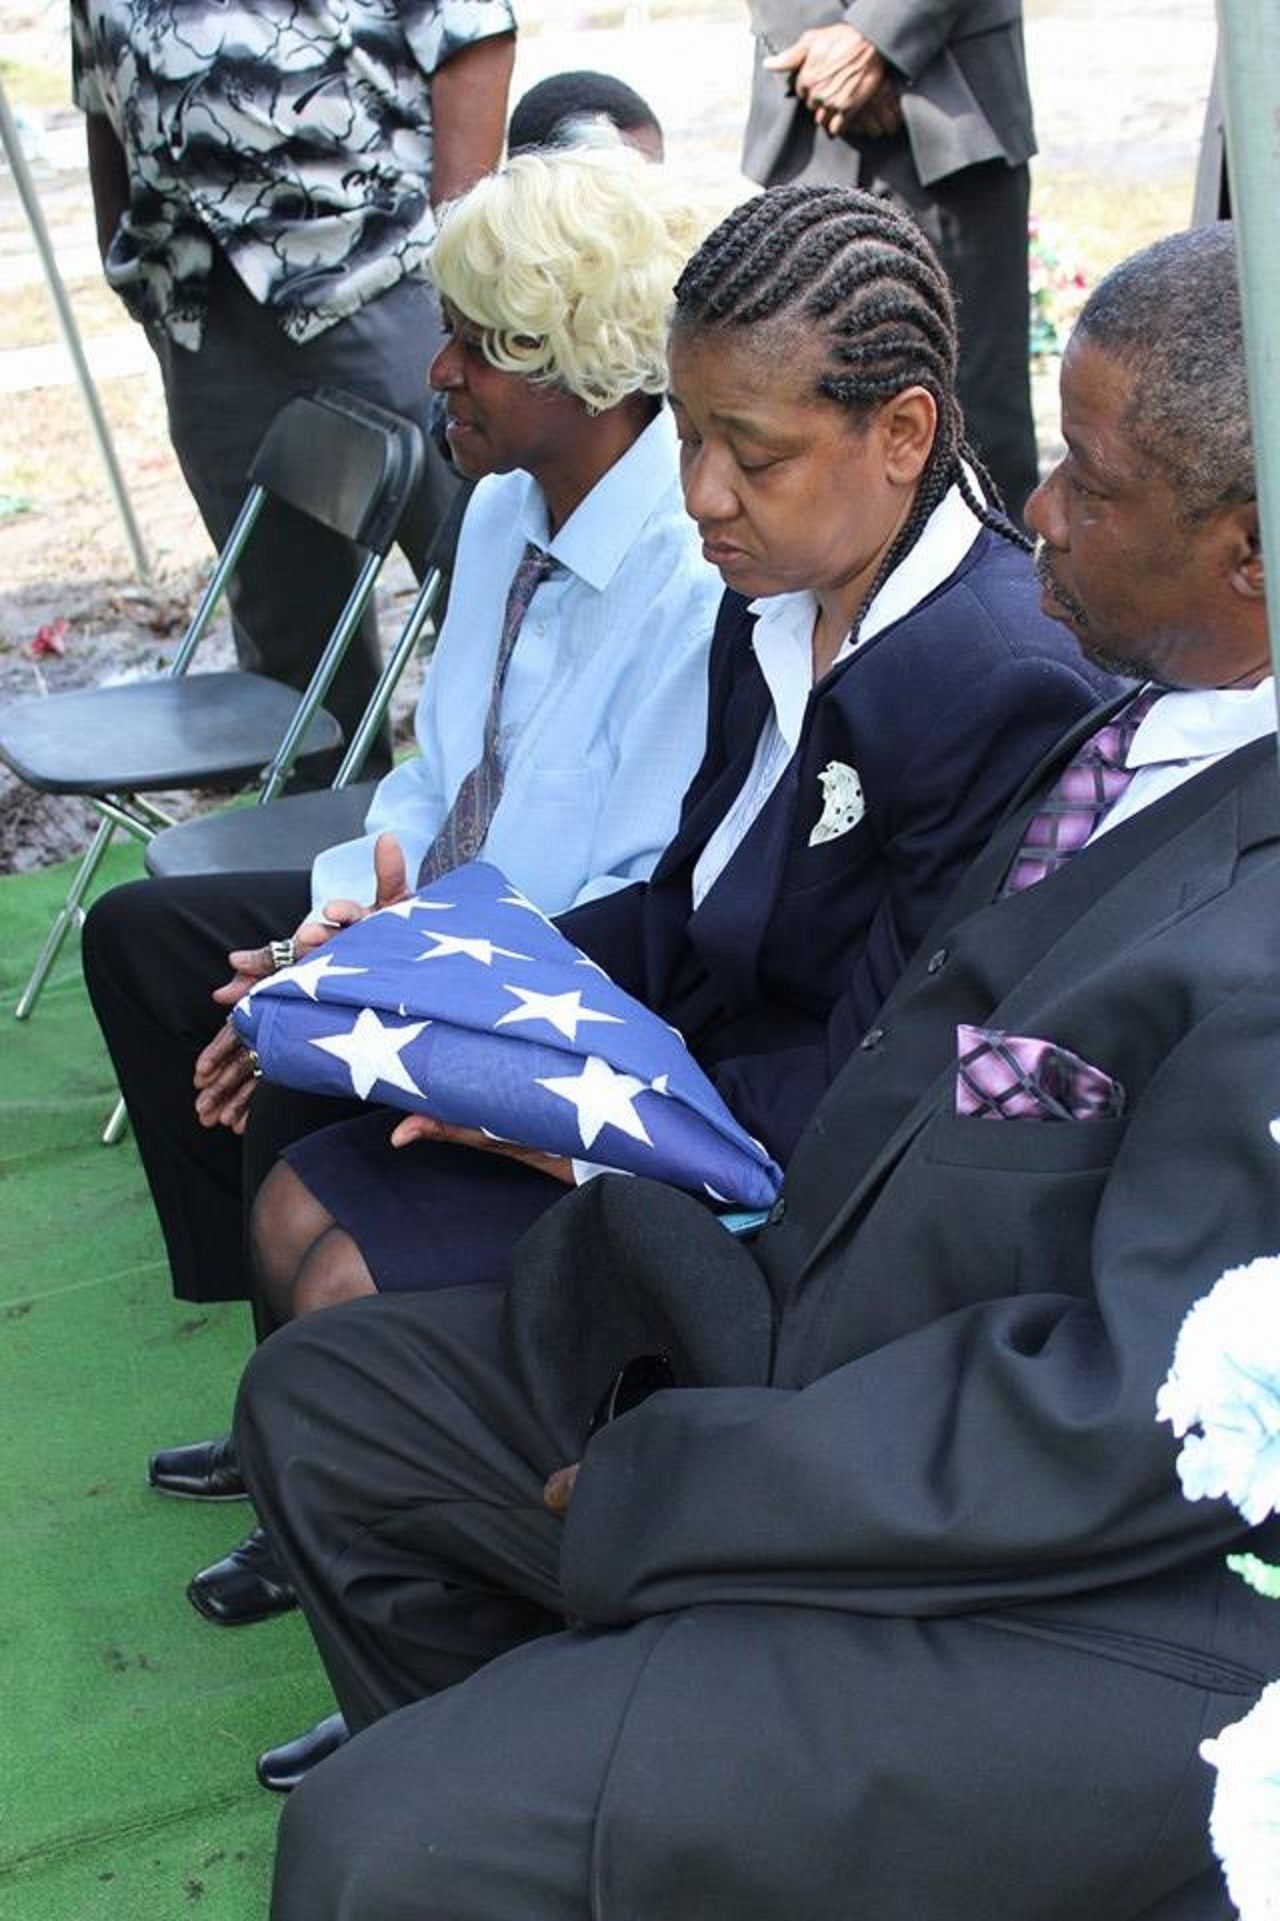 an american funeral. American American Flag American Funeral American Funeral. Cemetery Ceremony Country Daughter Of A Soldier Day Family Funeral Group Of People Men Outdoors Pride Sad Sadness Soldiers Solemn Somber South South Carolina Southern Women The Portraitist - 2017 EyeEm Awards